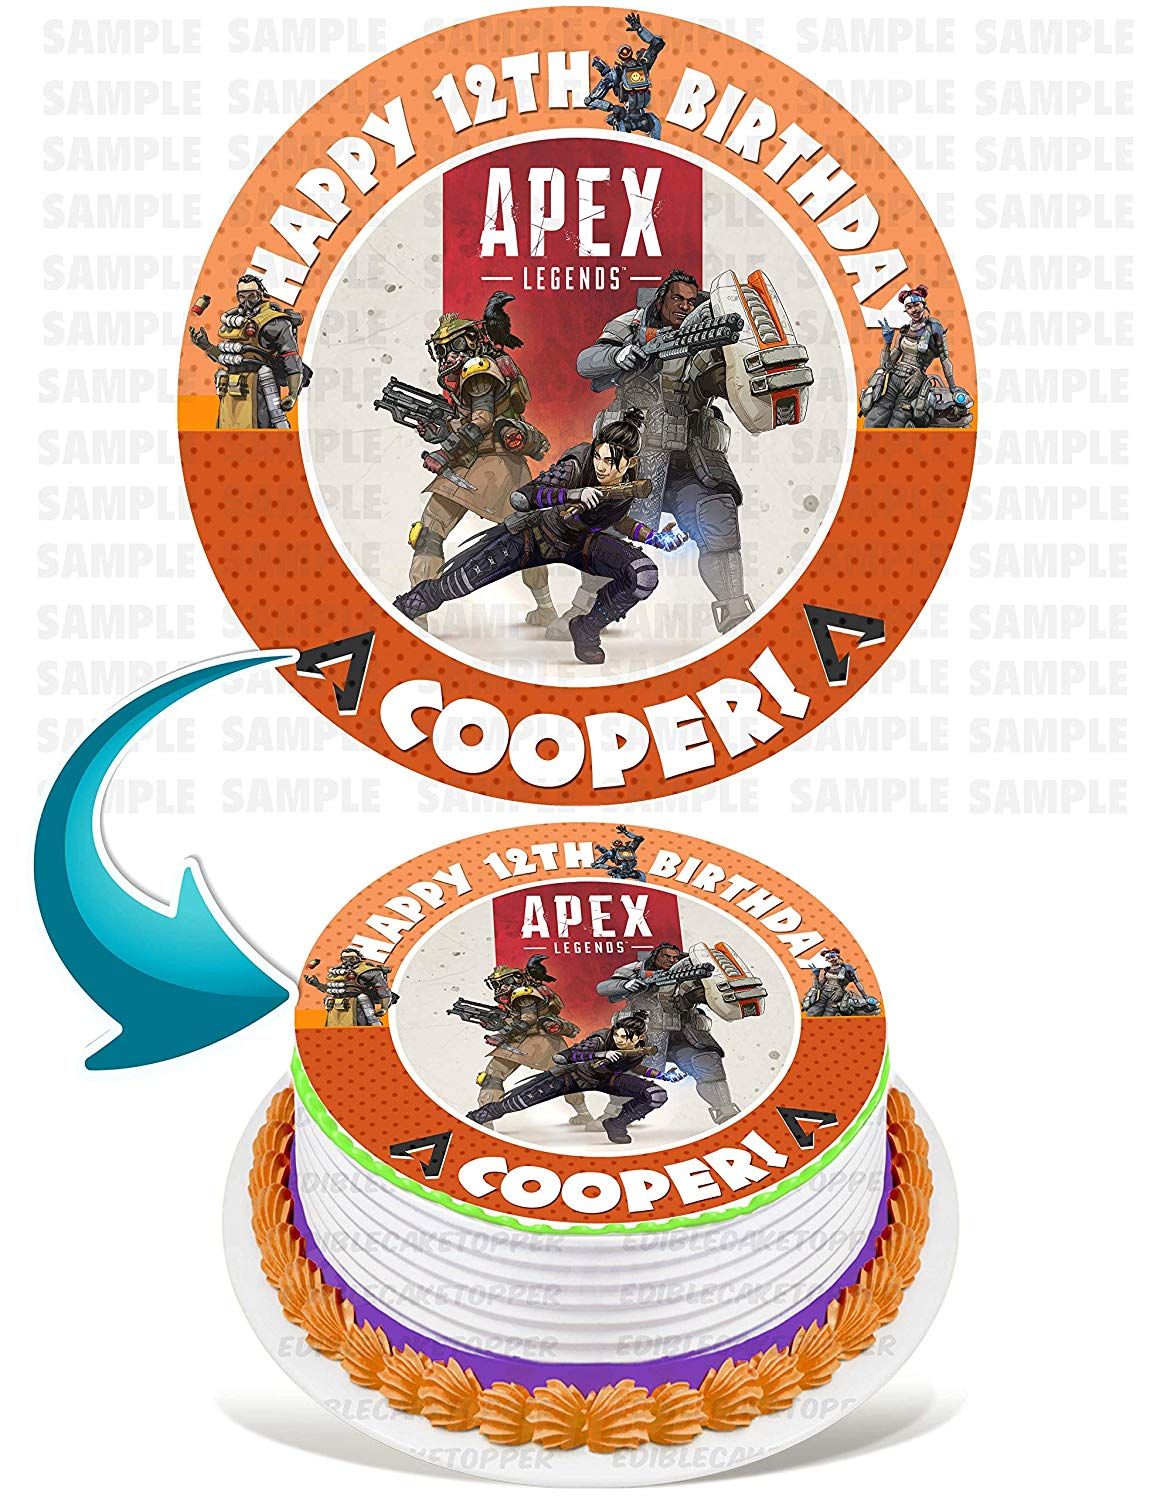 Tremendous Apex Legends Edible Cake Image Topper Personalized Birthday Party Personalised Birthday Cards Petedlily Jamesorg